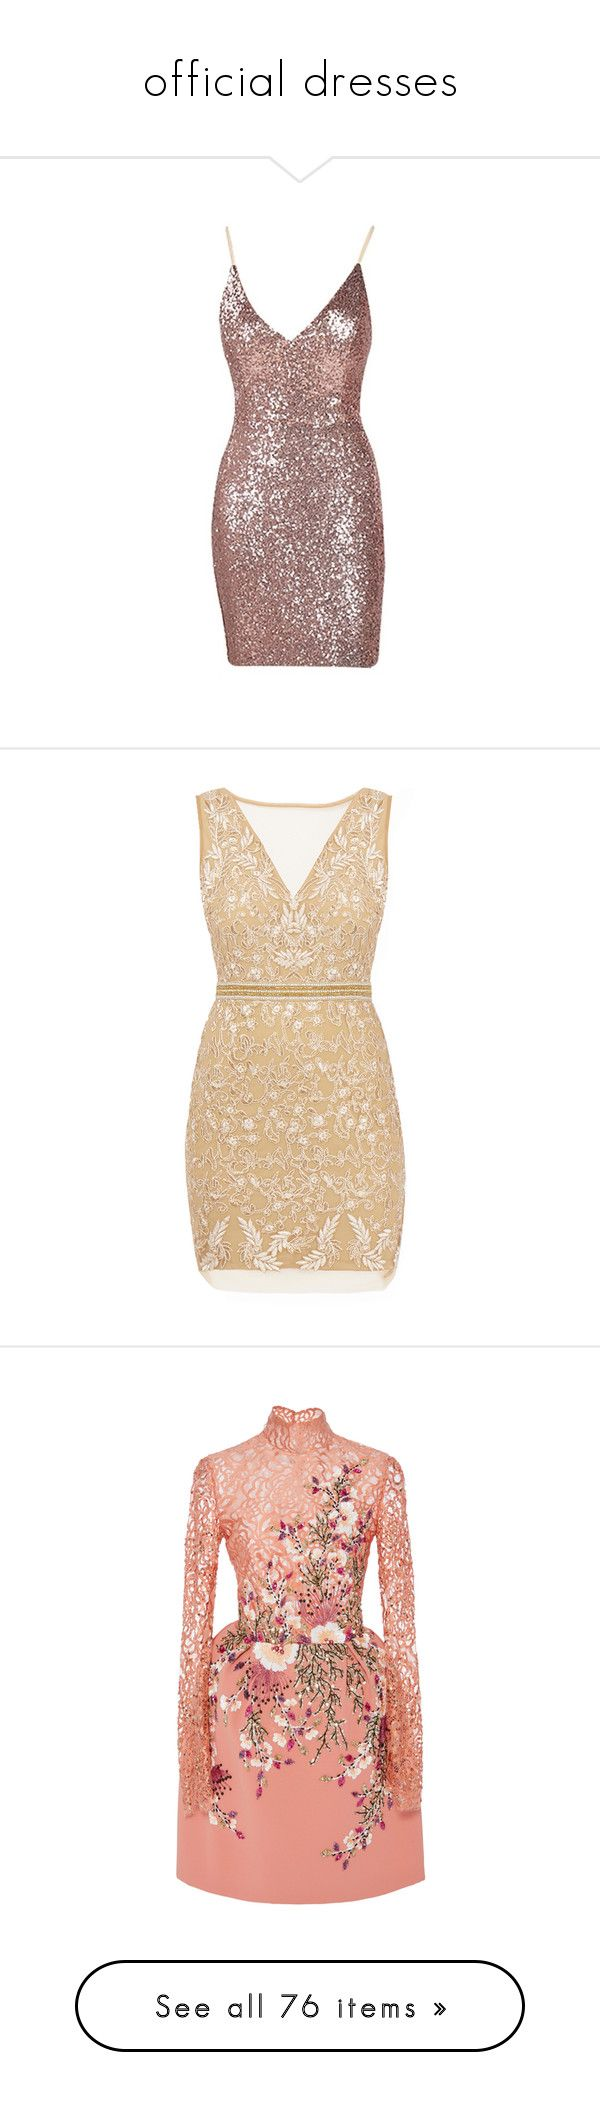 """""""official dresses"""" by polyvore966 ❤ liked on Polyvore featuring dresses, sequin cocktail dresses, spaghetti strap cocktail dress, sequin dresses, brown sequin dress, short dresses, vestidos, vestidos curtos, gold and v neck cocktail dress"""